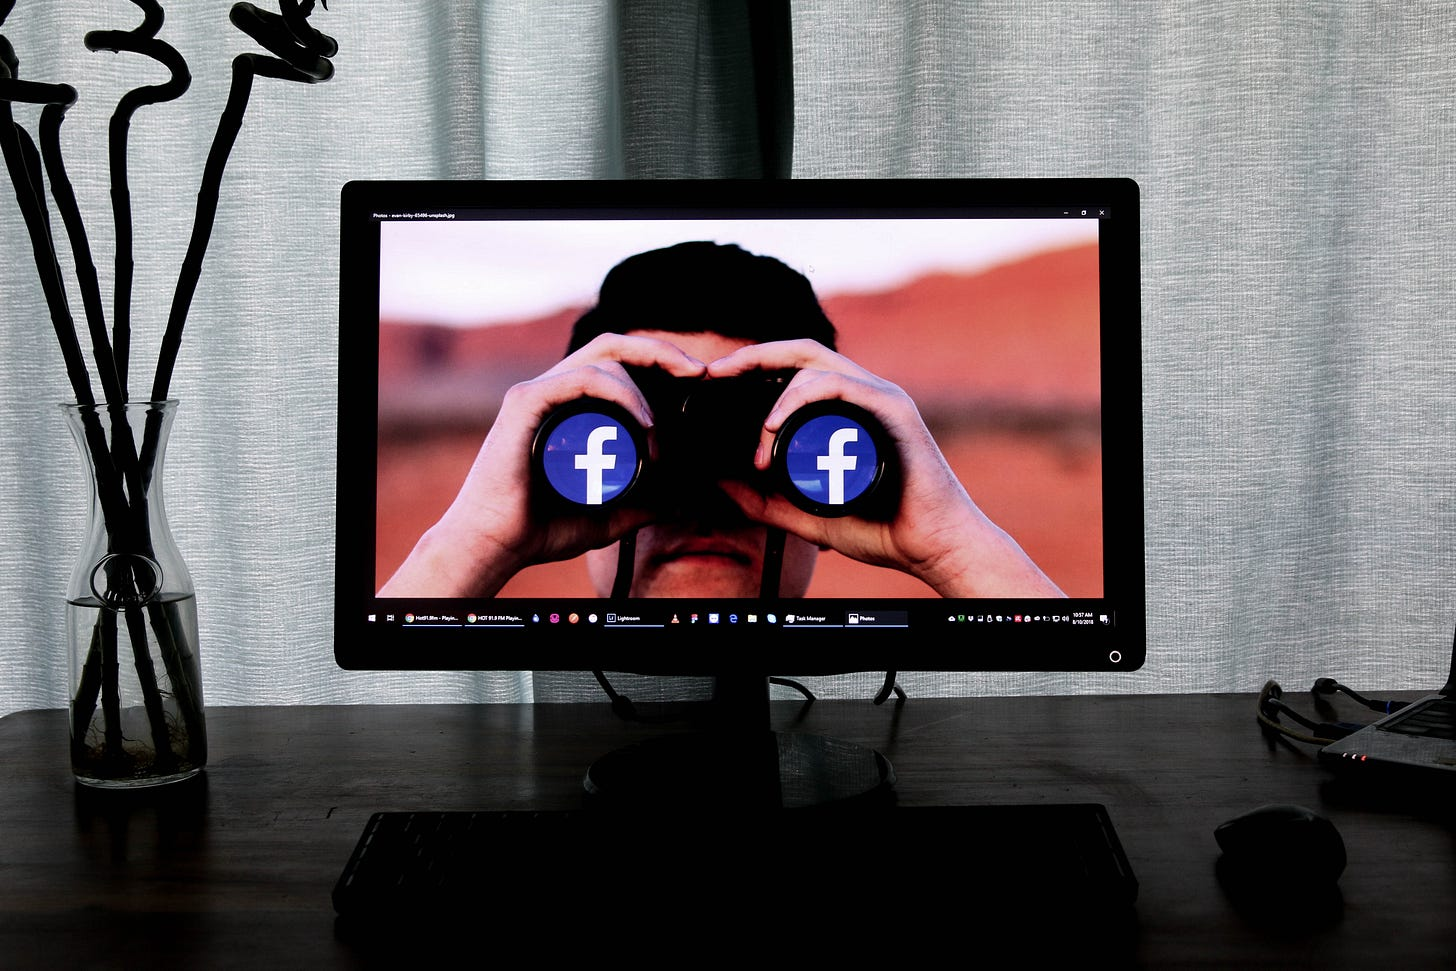 Photo of a computer monitor showing a man staring through binoculars with Facebook logos on the lenses. Glenn Carrie / Unsplash